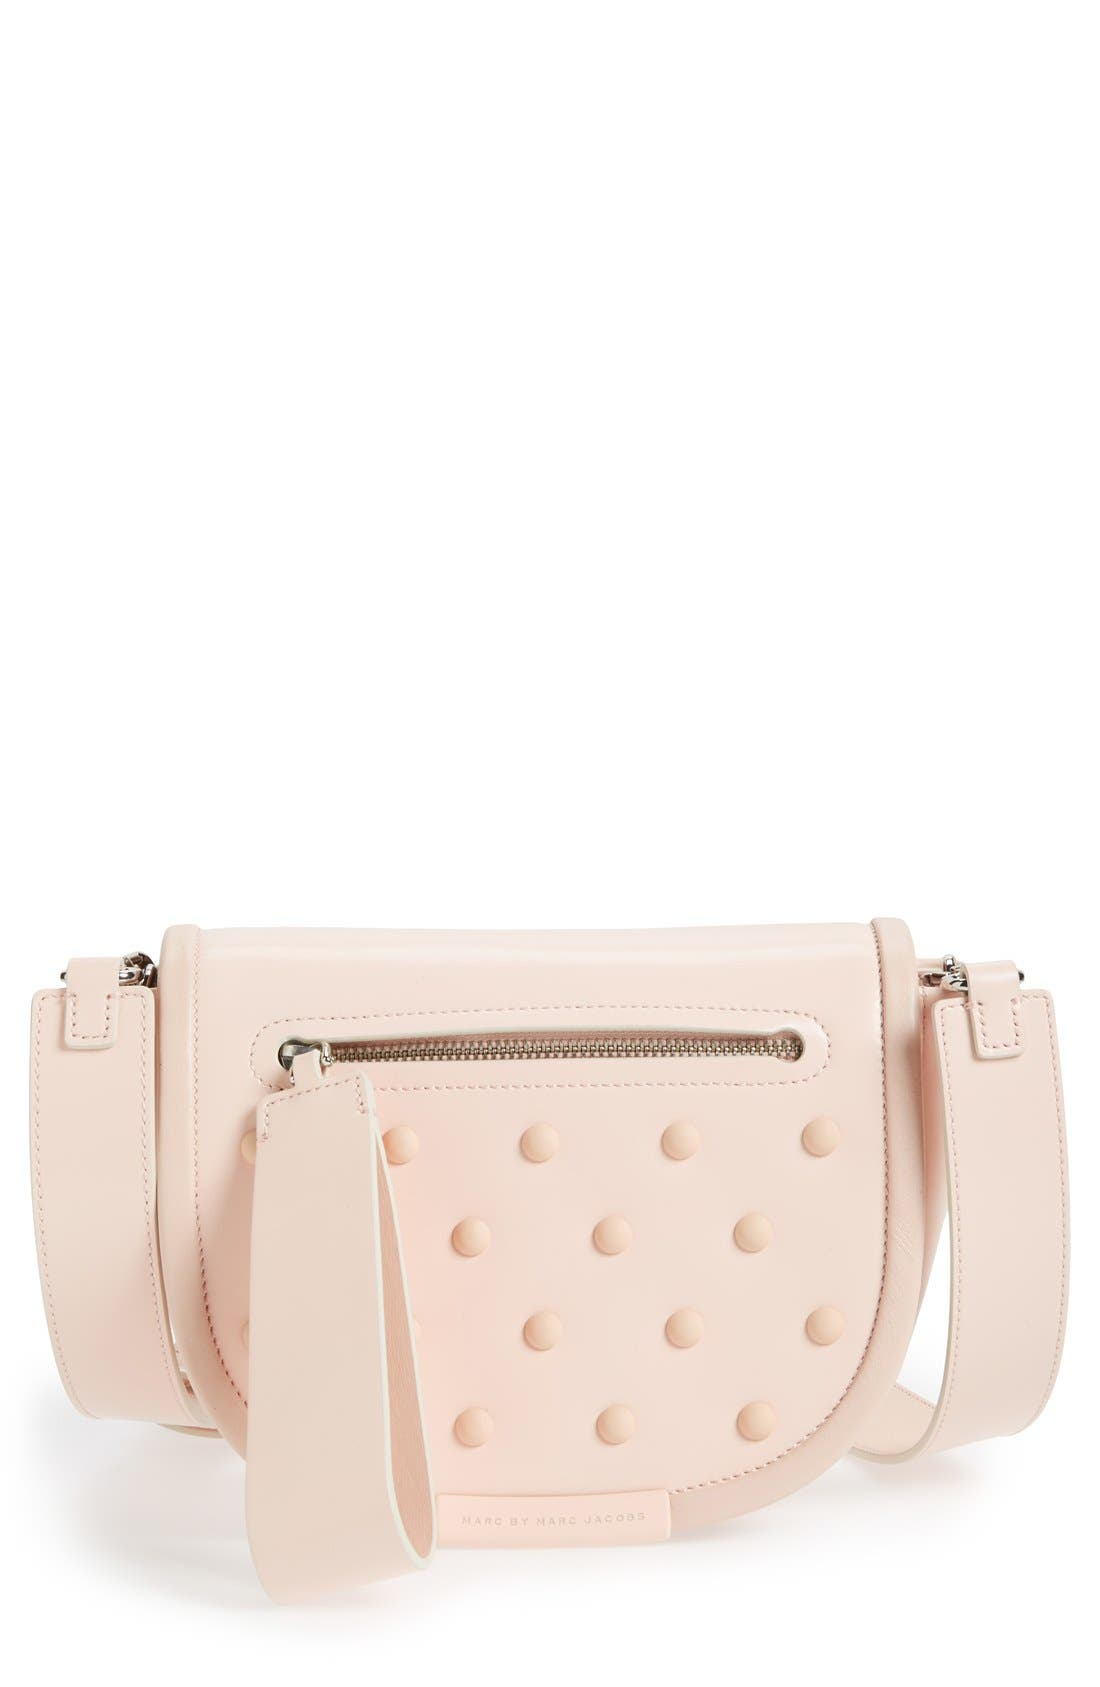 Main Image - MARC BY MARC JACOBS 'Luna' Crossbody Bag